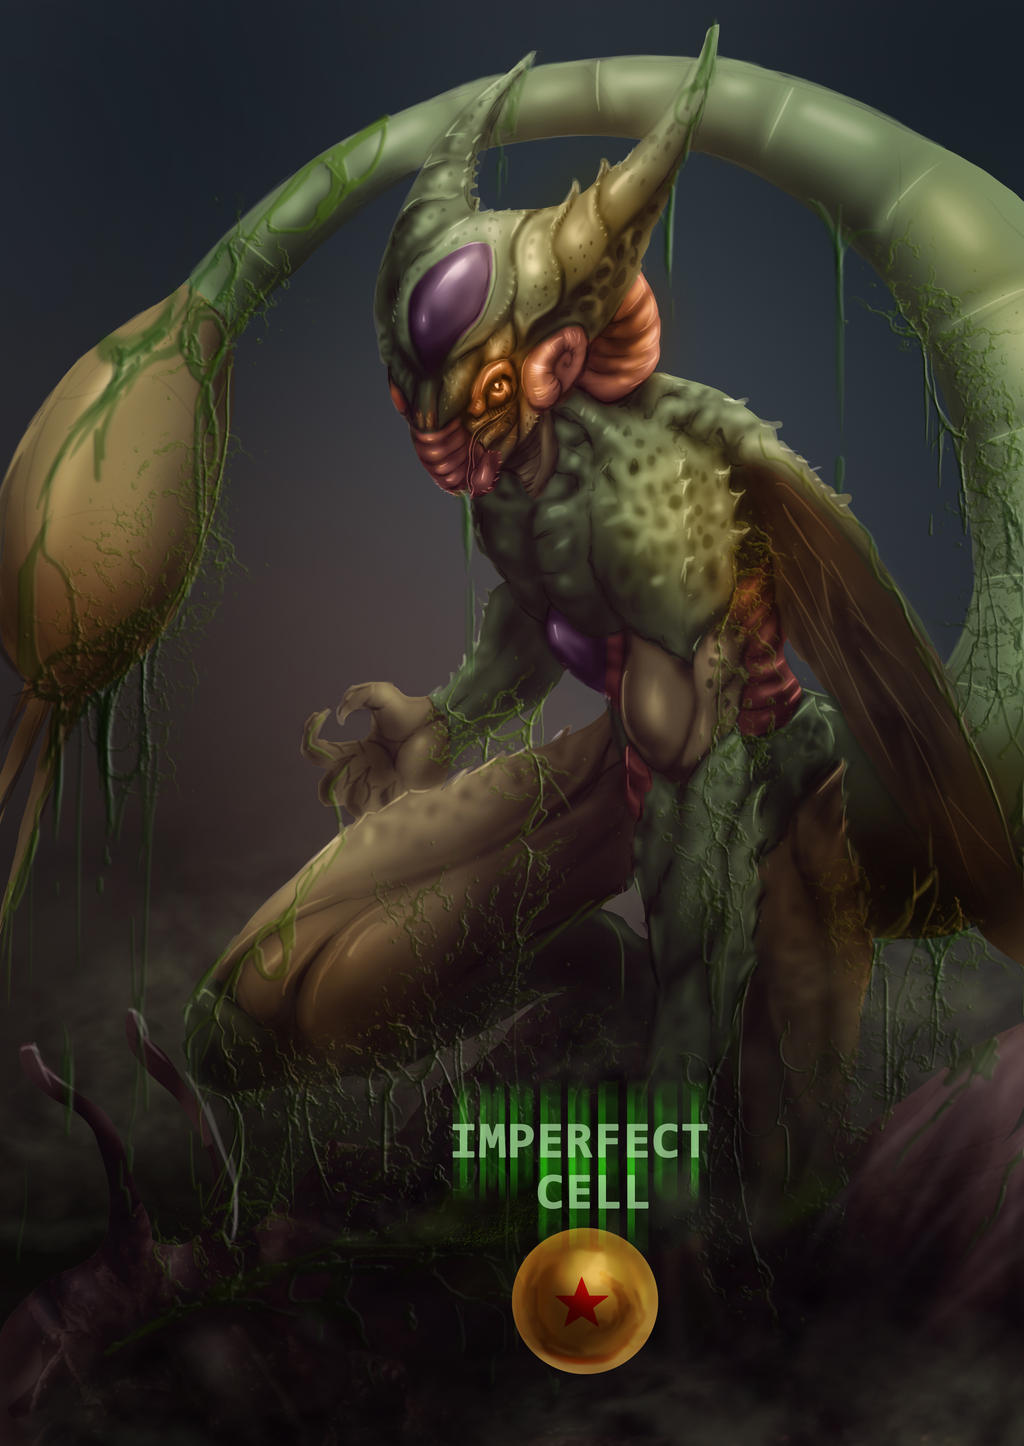 DRAGON BALL Z Cell Imperfect form v.2 by Grapiqkad on DeviantArt